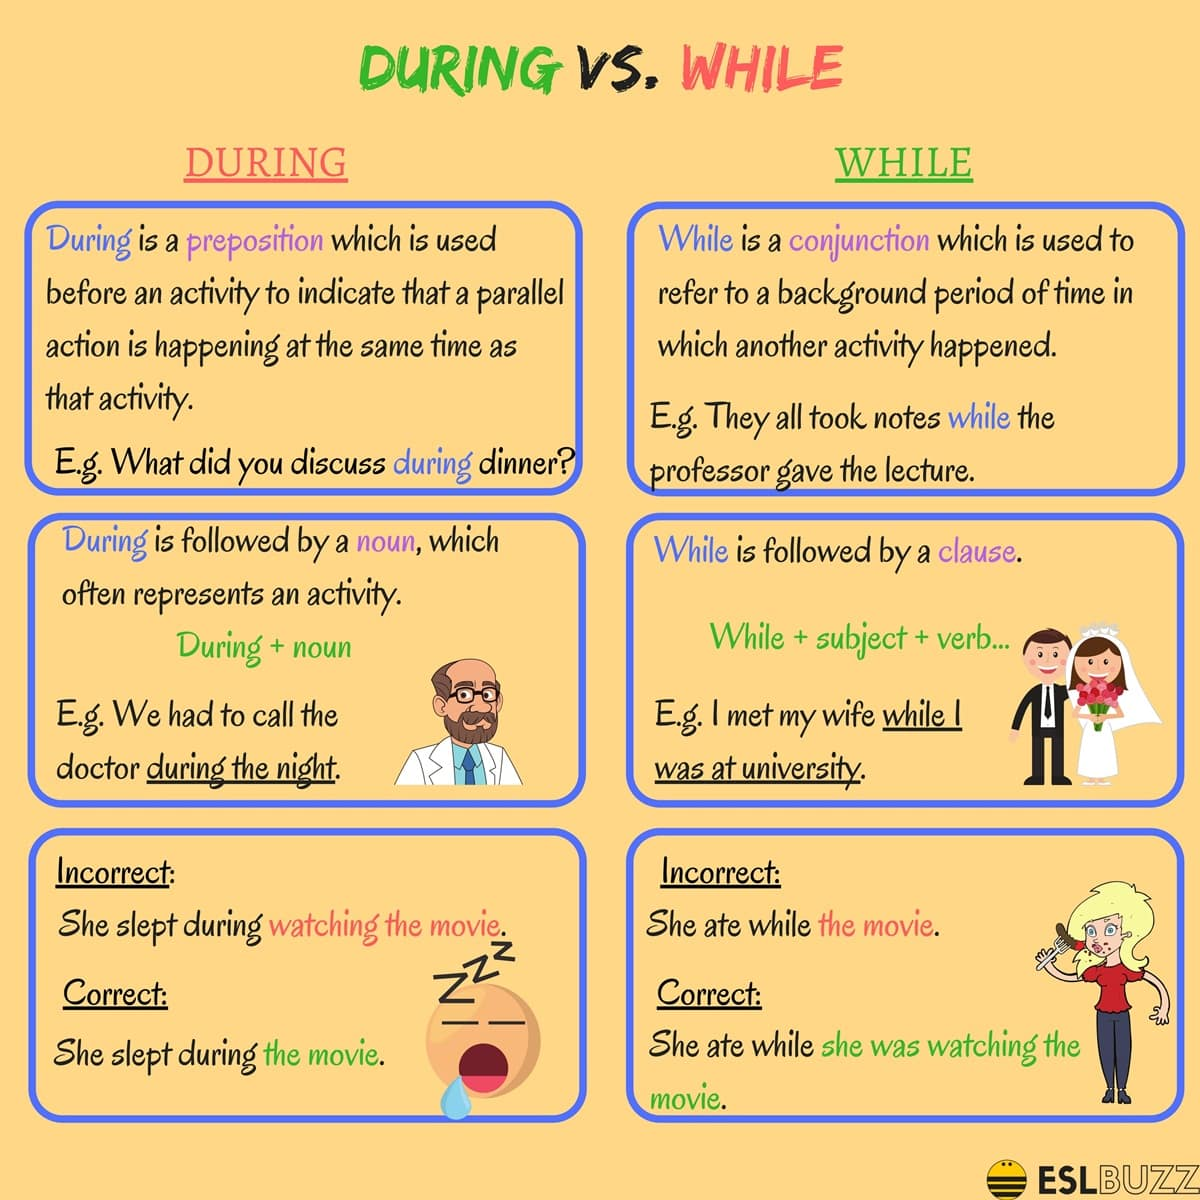 Difference Between During and While